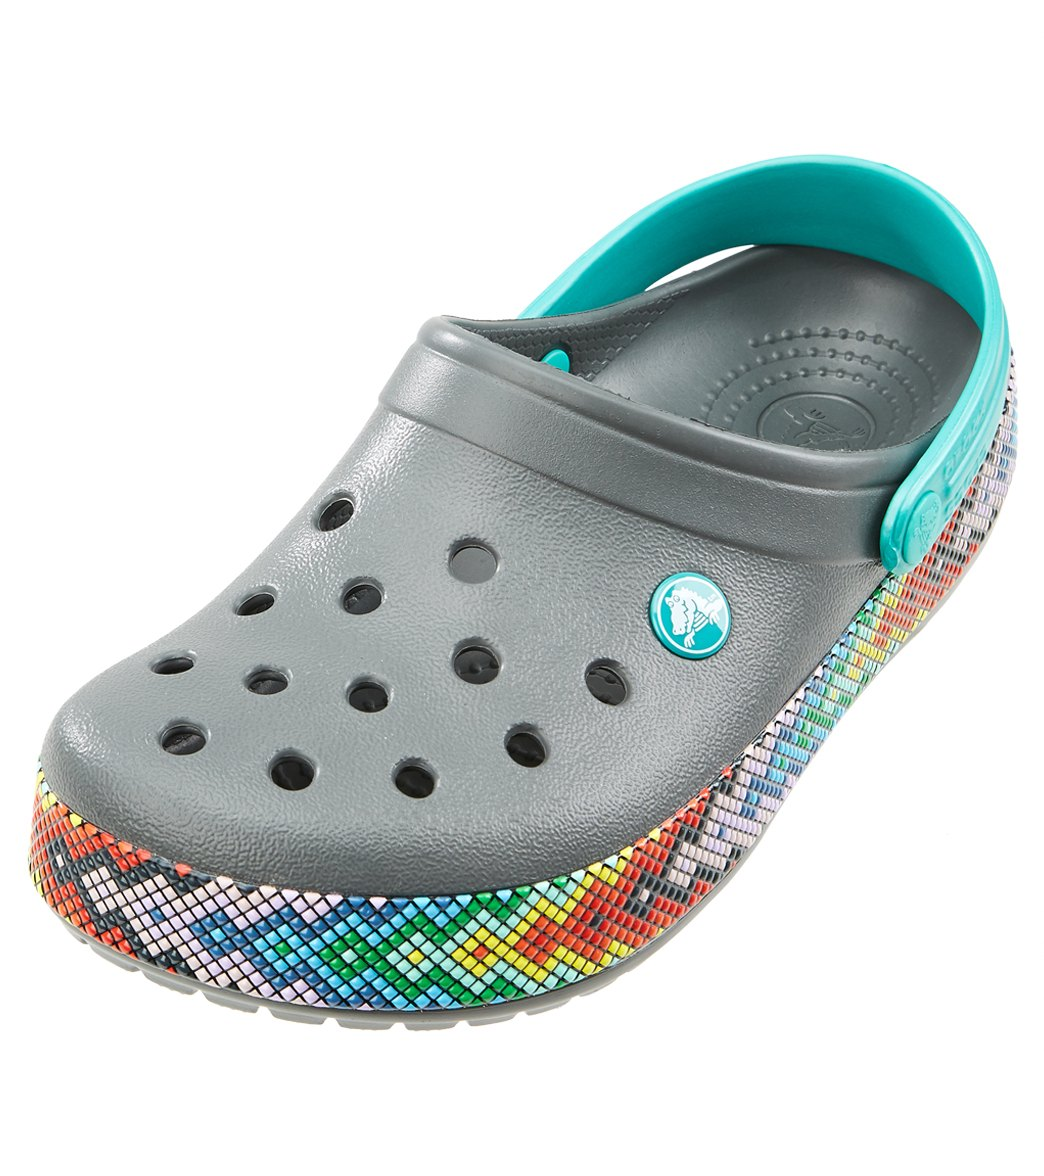 6ec61bd7dfda23 Crocs Crocband Gallery Clog at SwimOutlet.com